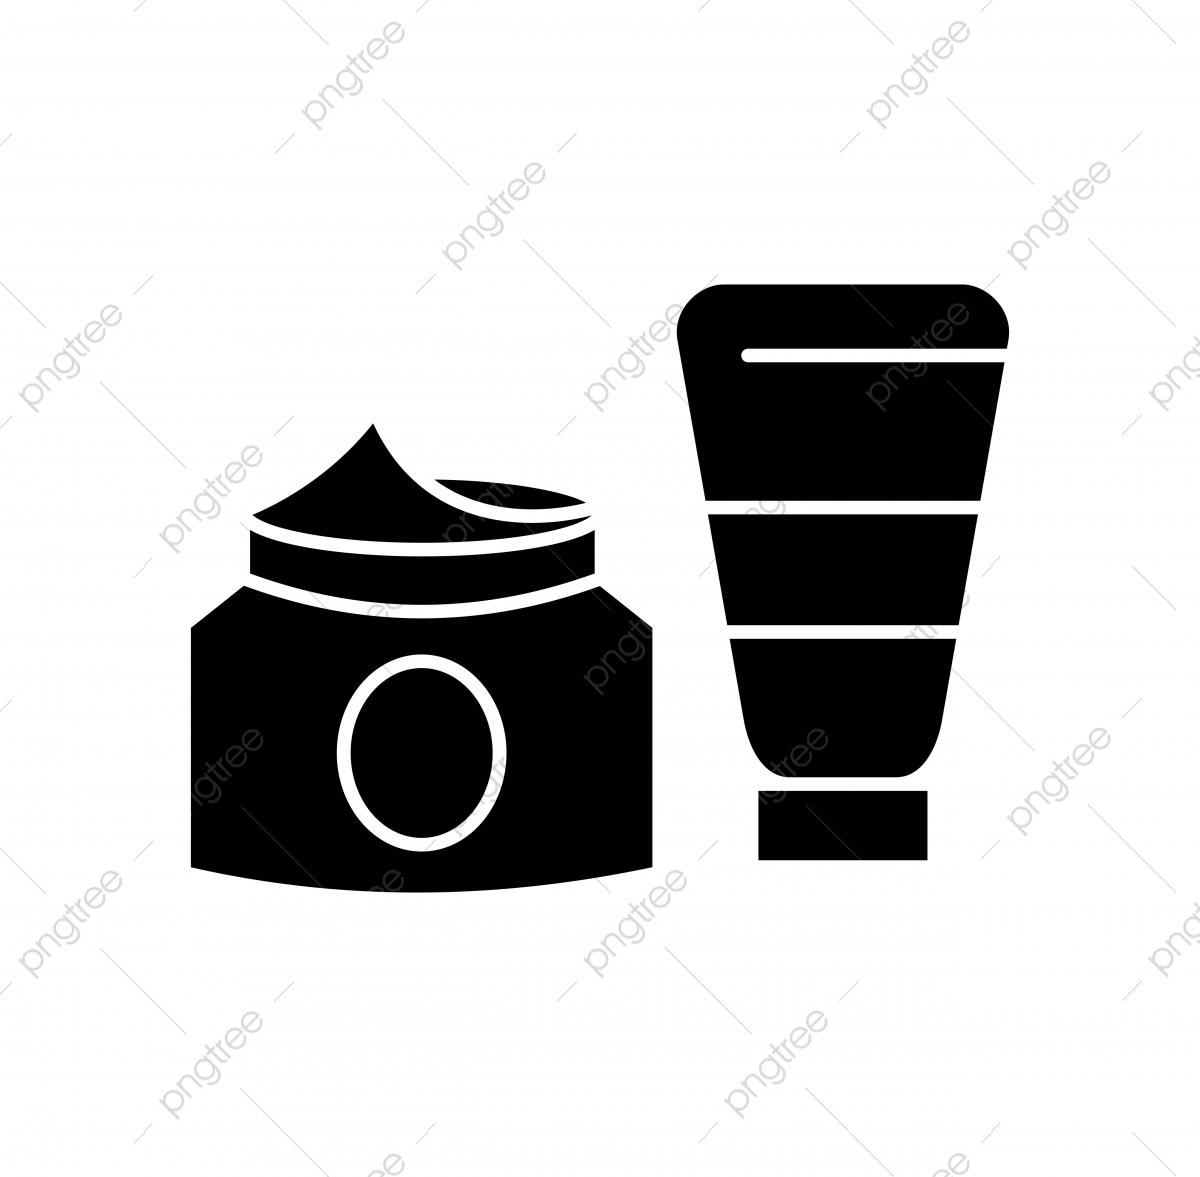 jas png images vector and psd files free download on pngtree https pngtree com freepng cream bottles icon for your project 4854210 html